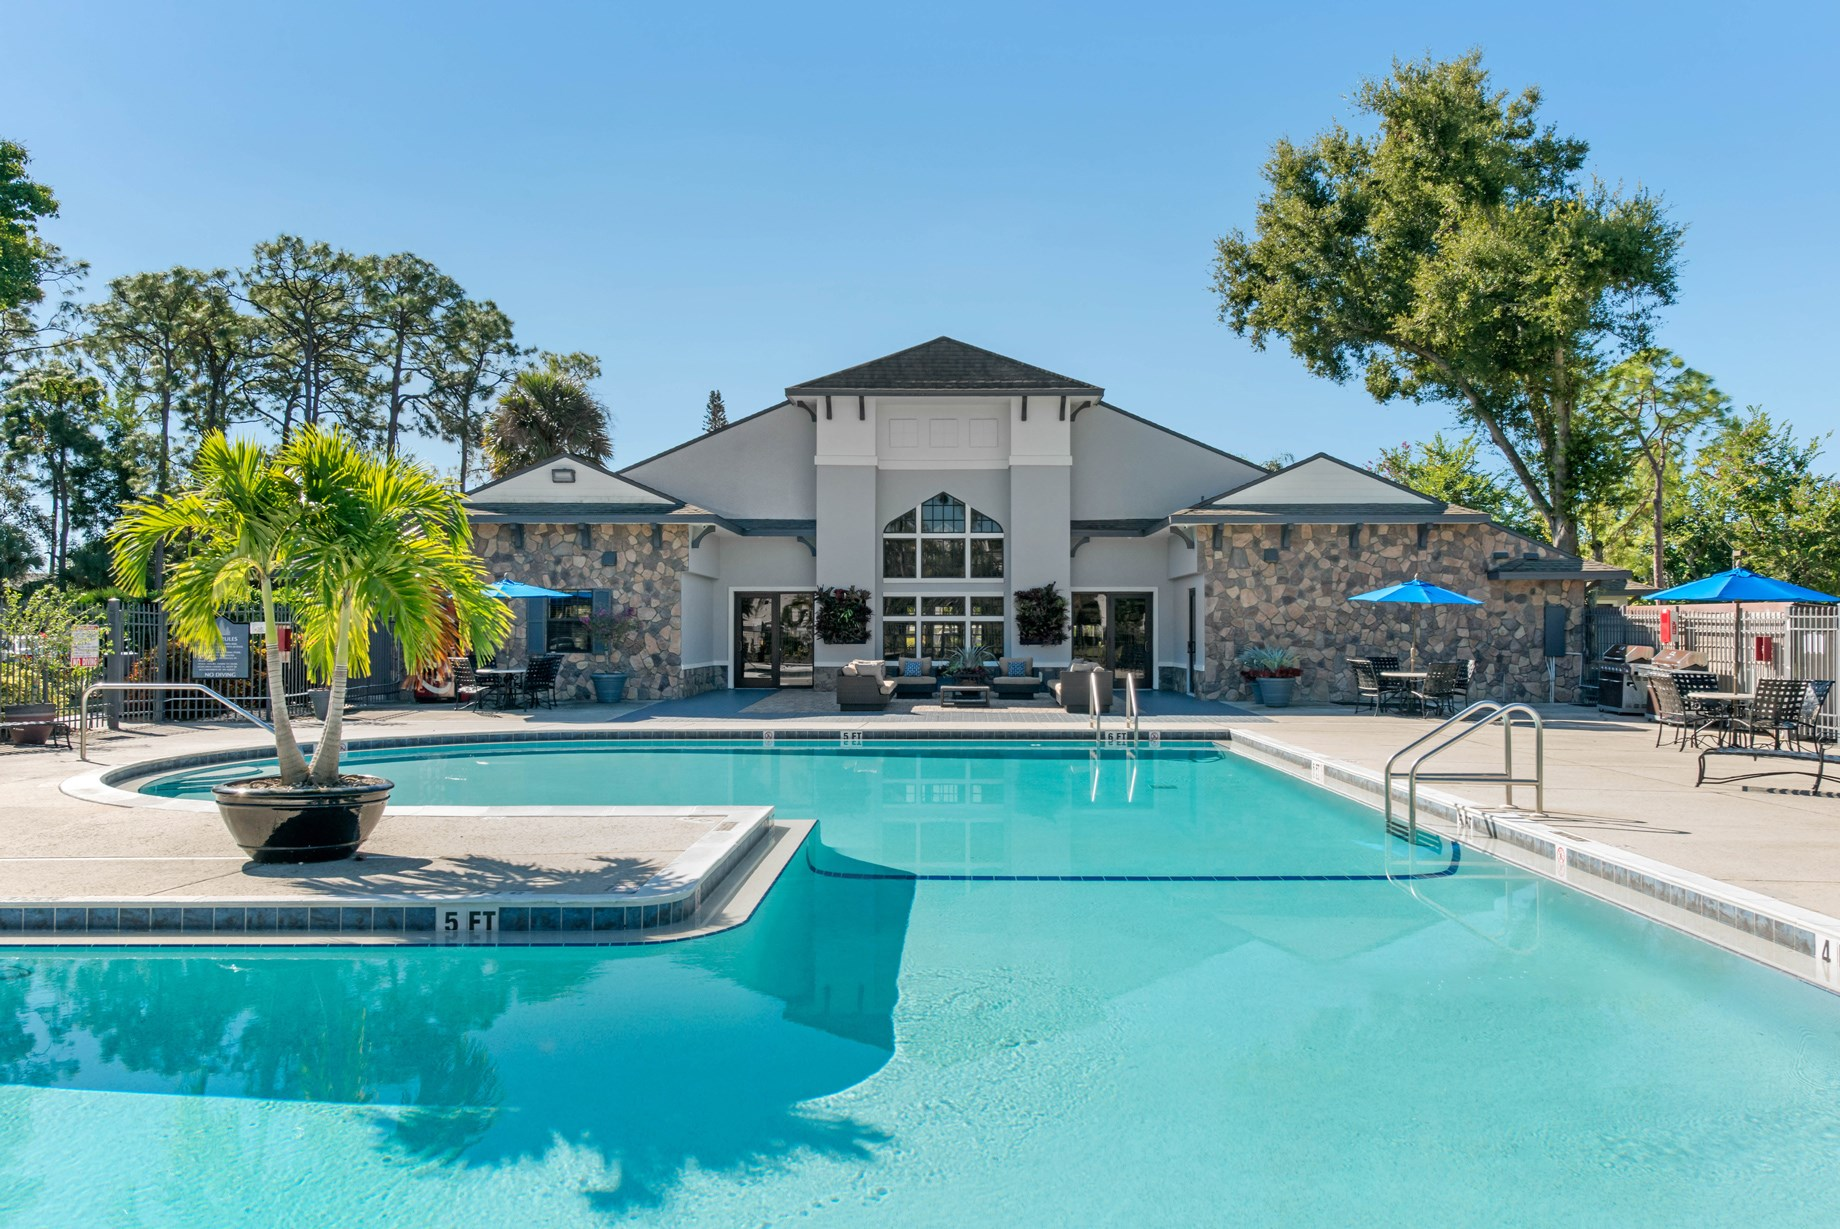 Swimming Pool at Brantley Pines Apartments in Ft. Myers, FL